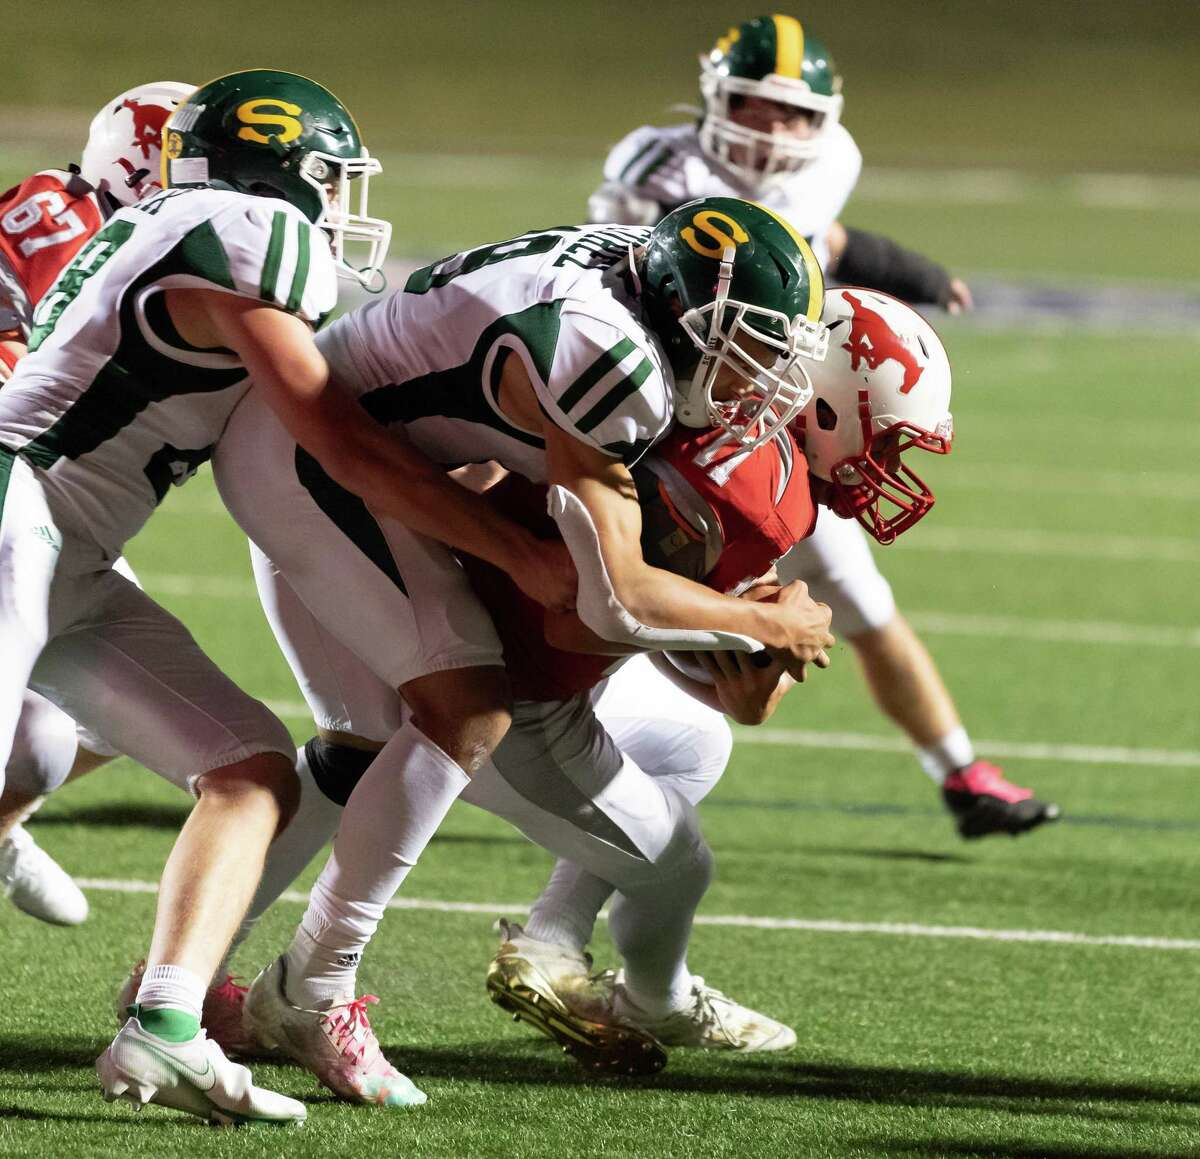 Mason Sanders (11) of the Memorial Mustangs is brought down by Anthony Cuhel (19) of the Stratford Spartans in the second half during a High School football game on Friday, October 30, 2020 at Tully Stadium in Houston Texas.